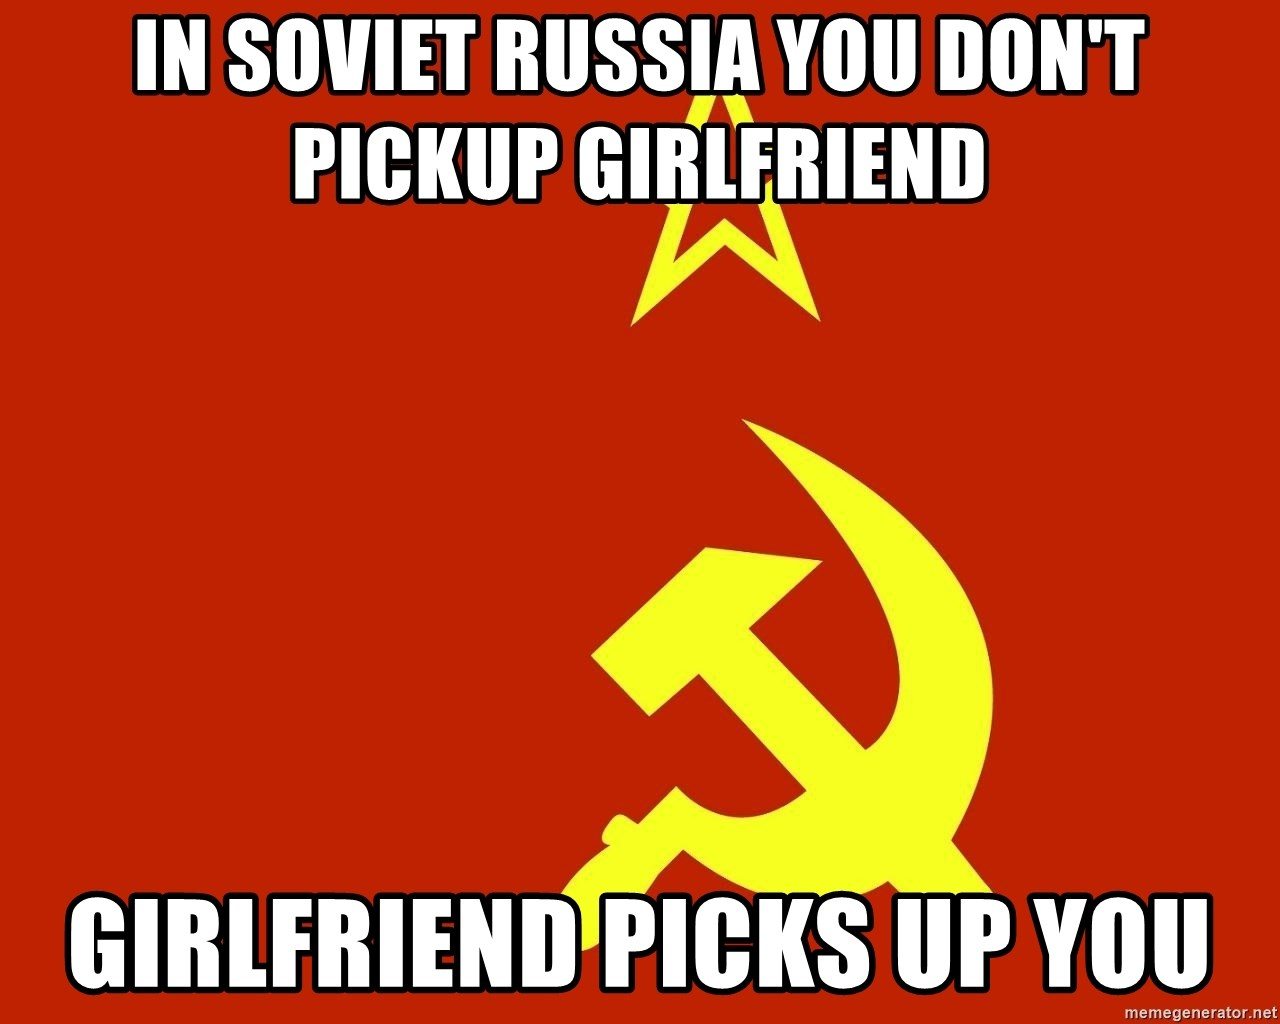 In Soviet Russia - In soviet russia you don't pickup girlfriend Girlfriend PICKS up you